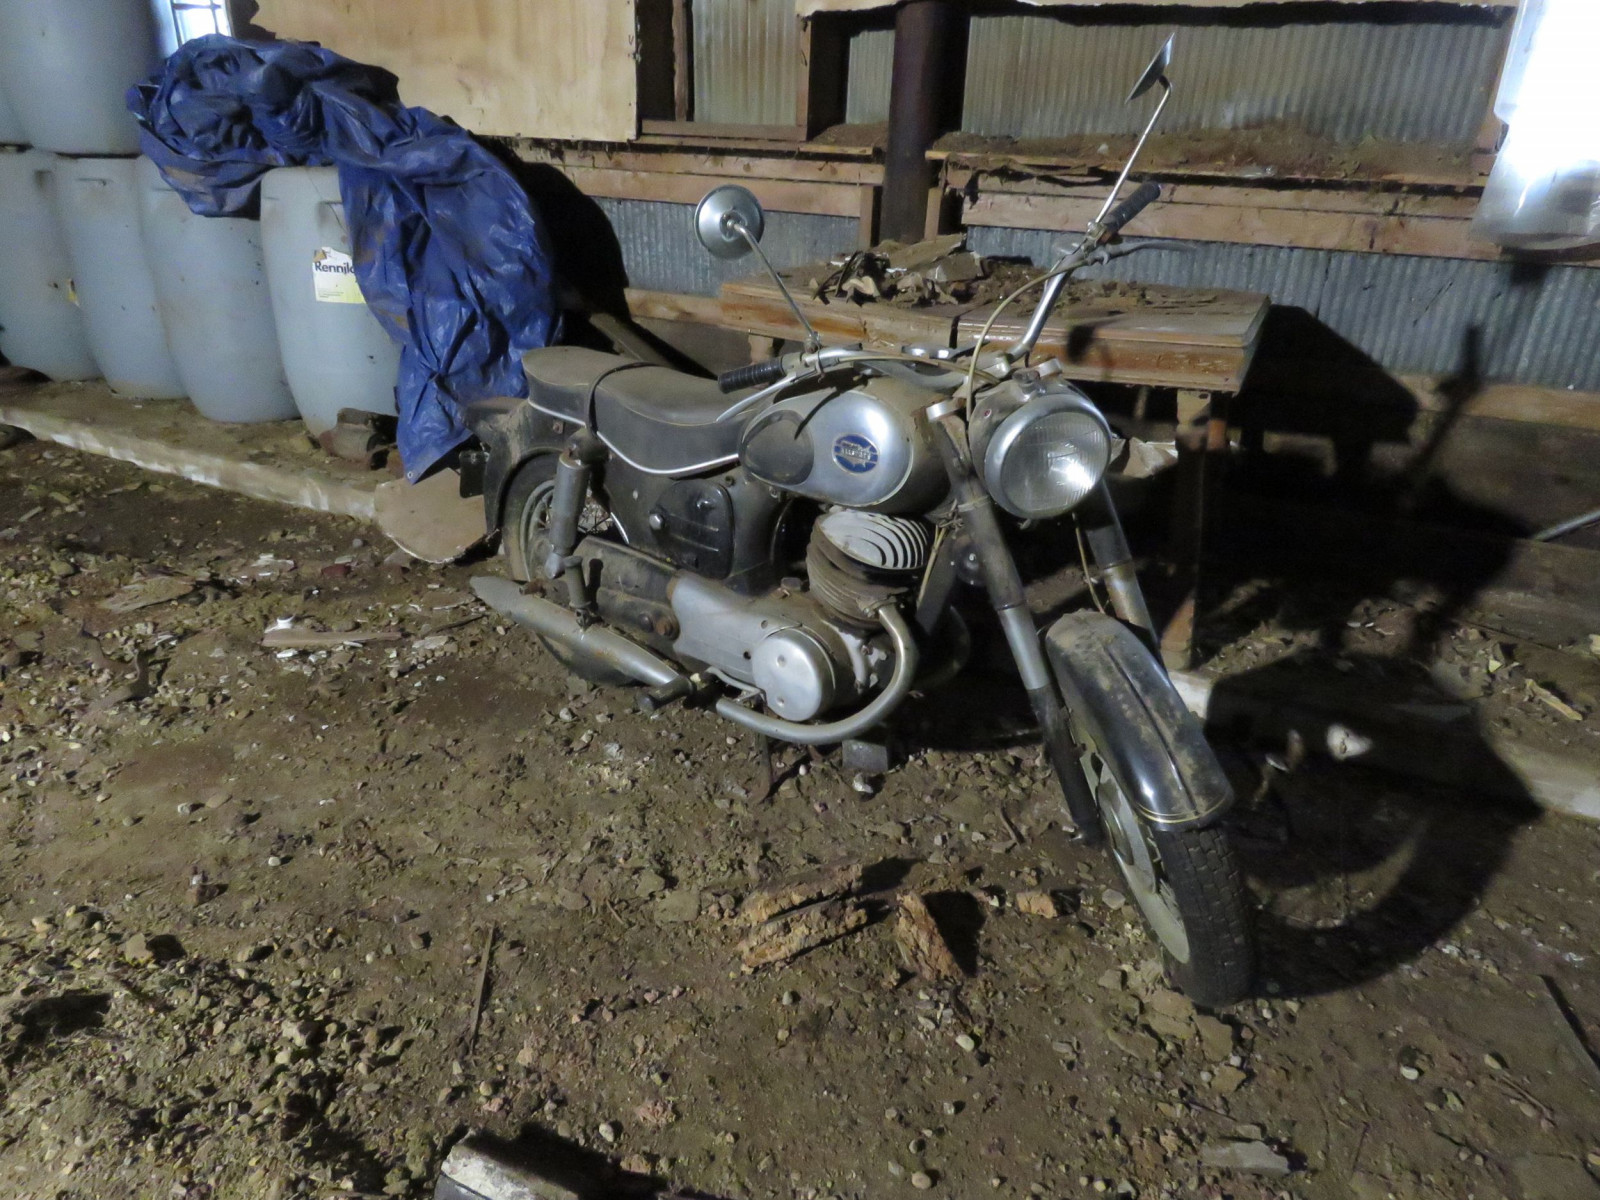 Puch All State Motorcycle - Image 1